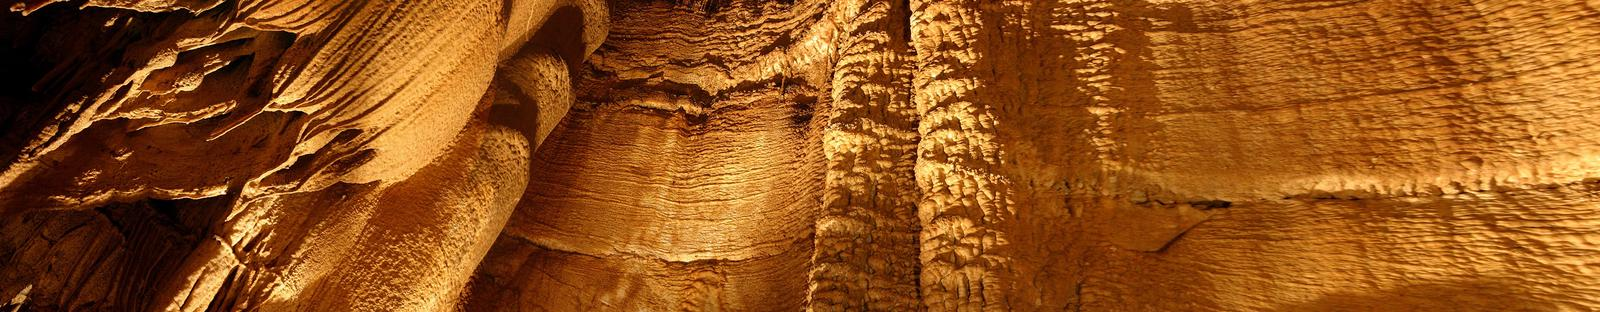 Domes and Dripstones tour, has vast areas of flowstone that resembles draperies. Domes and Dripstones tour